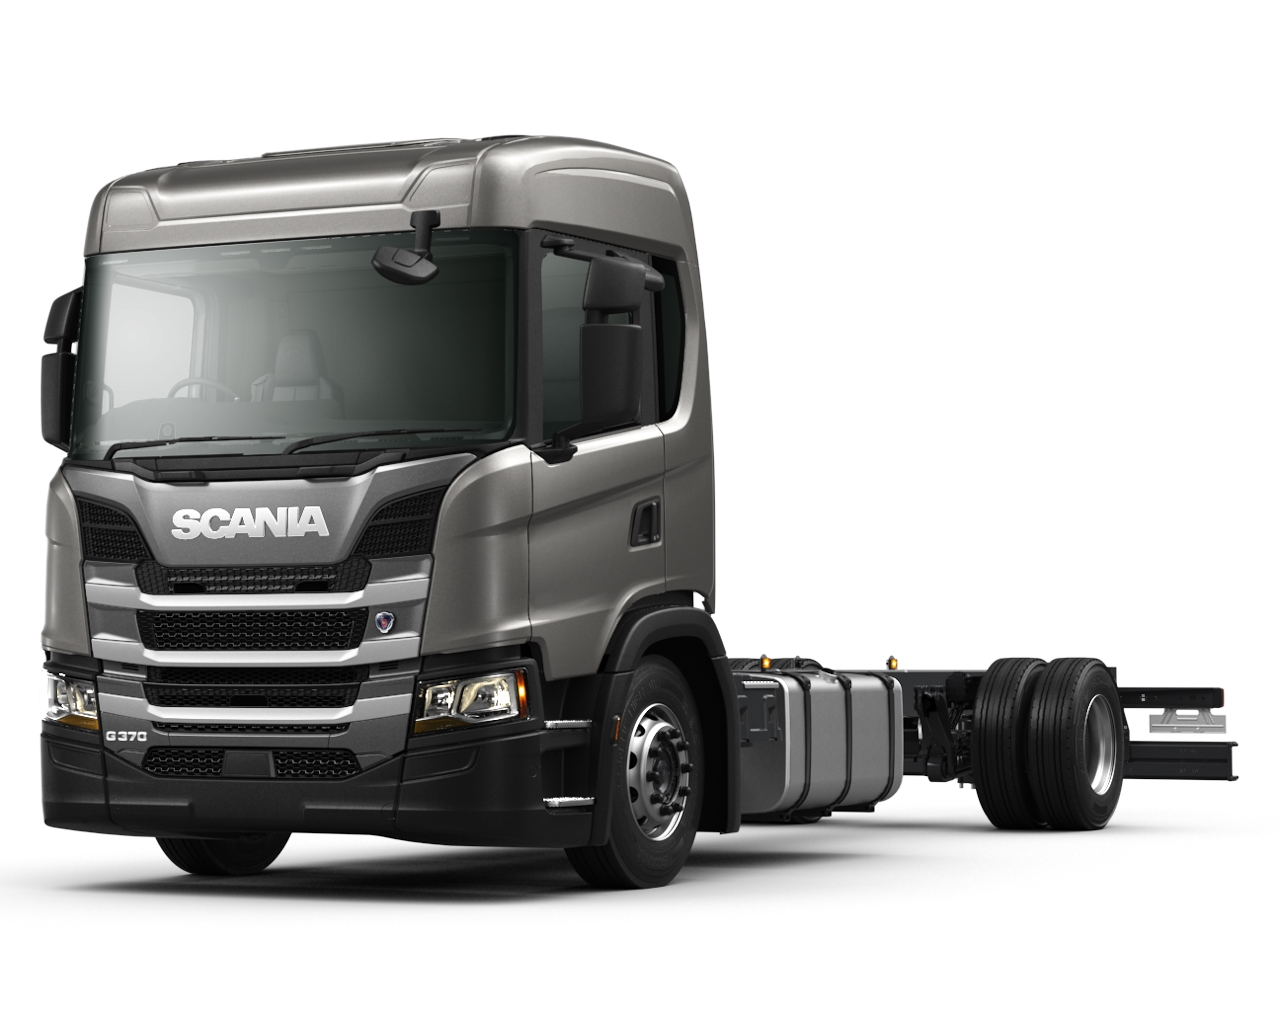 Scania G 370 B4x2NA Specifications & Technical Data (2019-2019